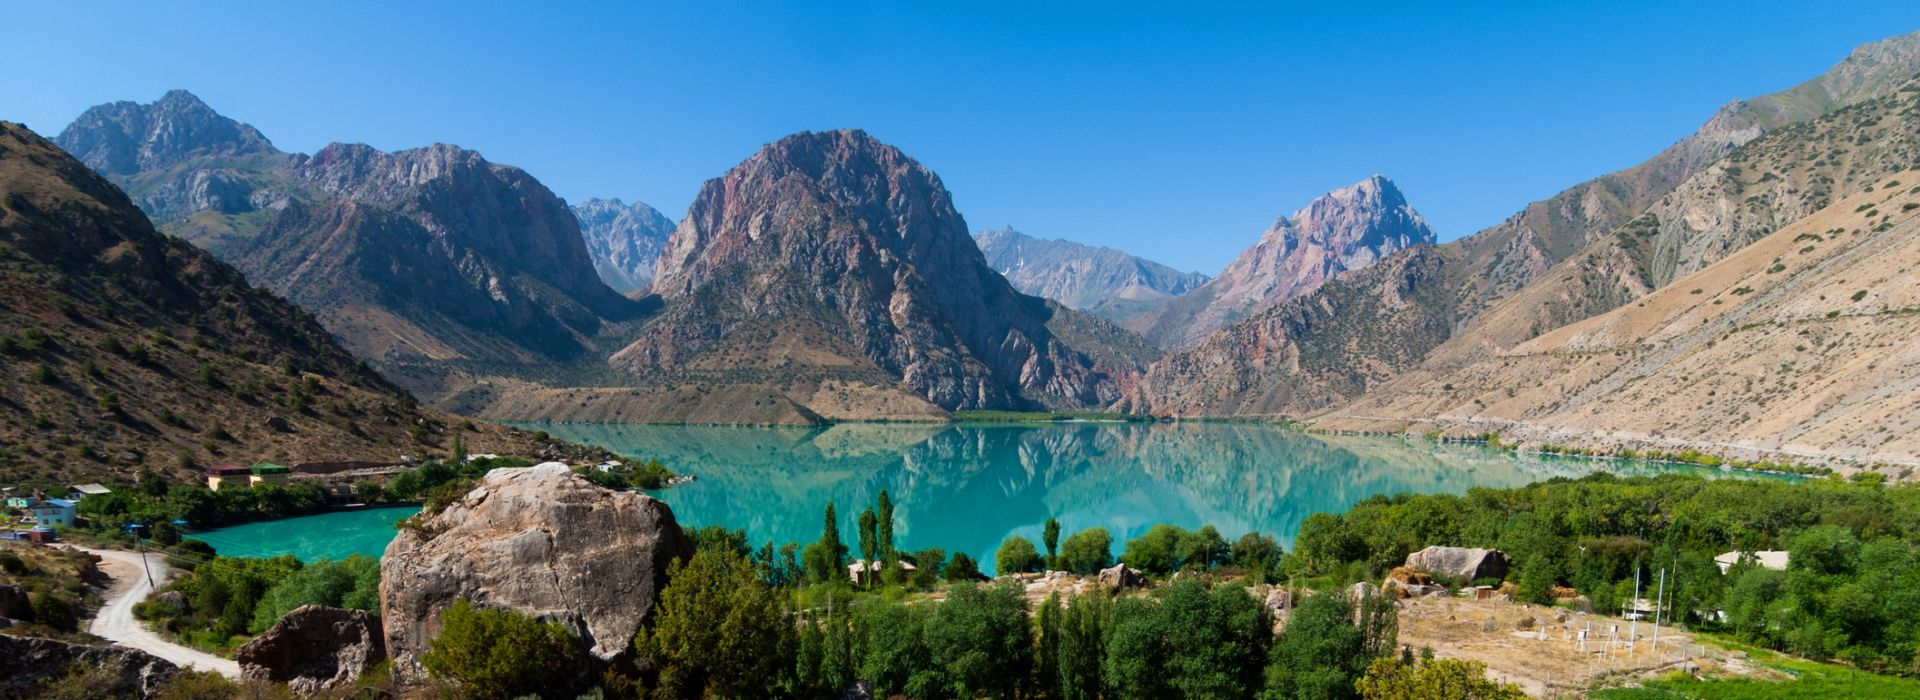 5 Best Tour Operators And Travel Agencies In Tajikistan Bookmundi